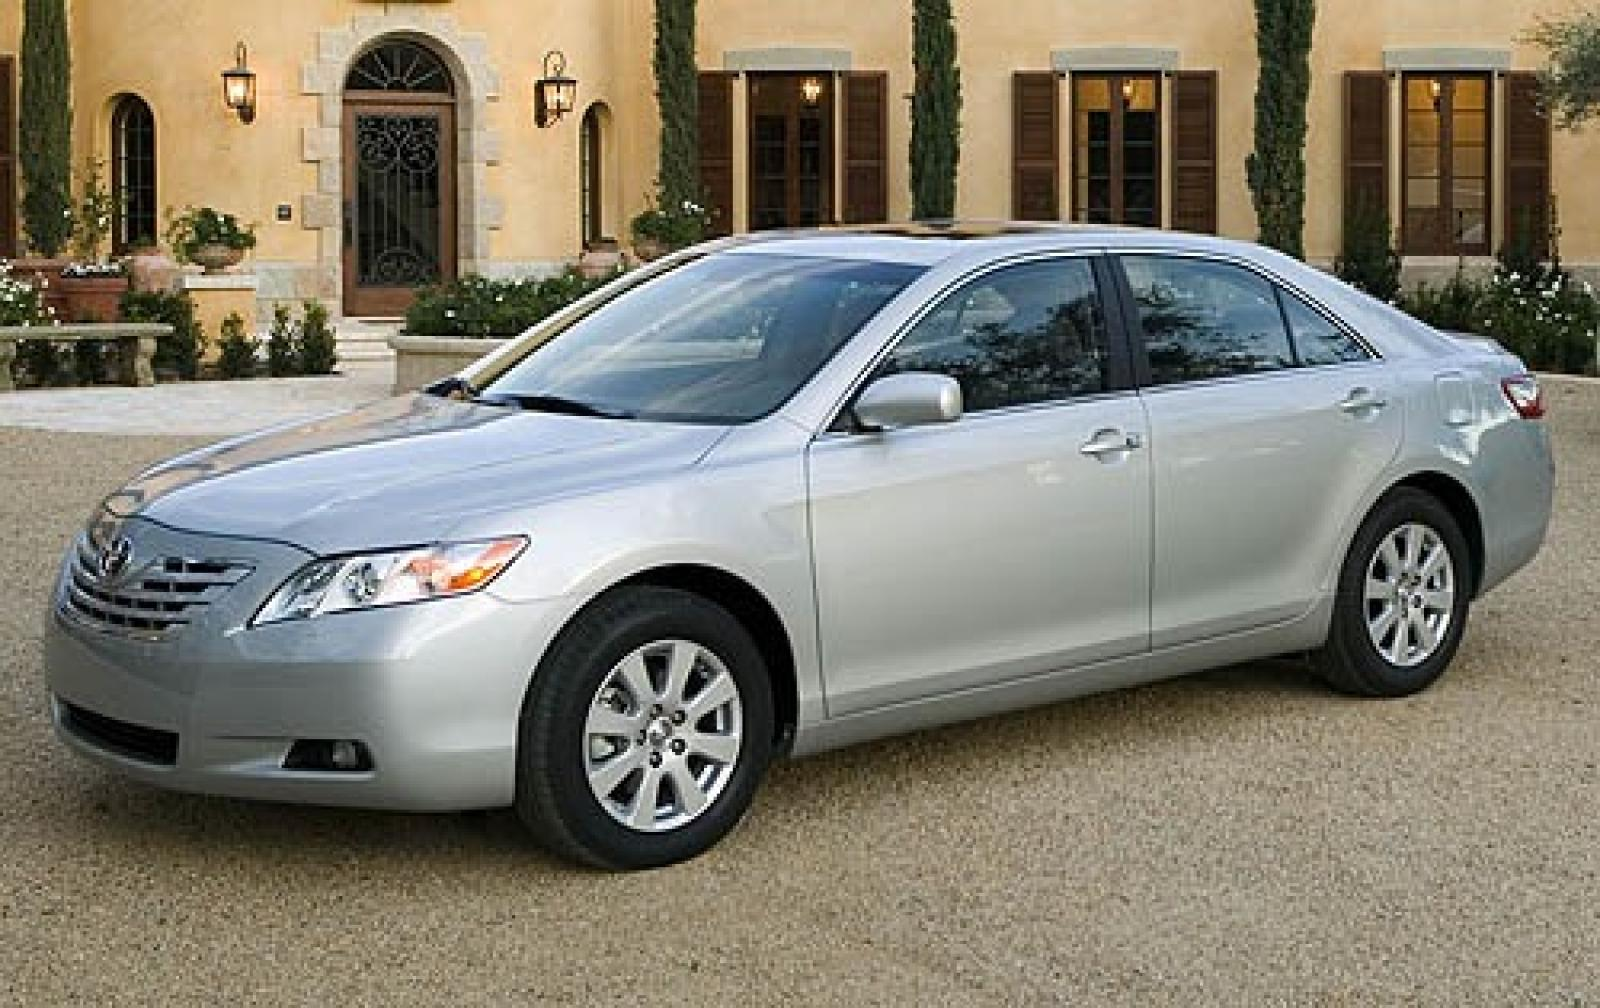 2009 toyota camry information and photos zombiedrive. Black Bedroom Furniture Sets. Home Design Ideas